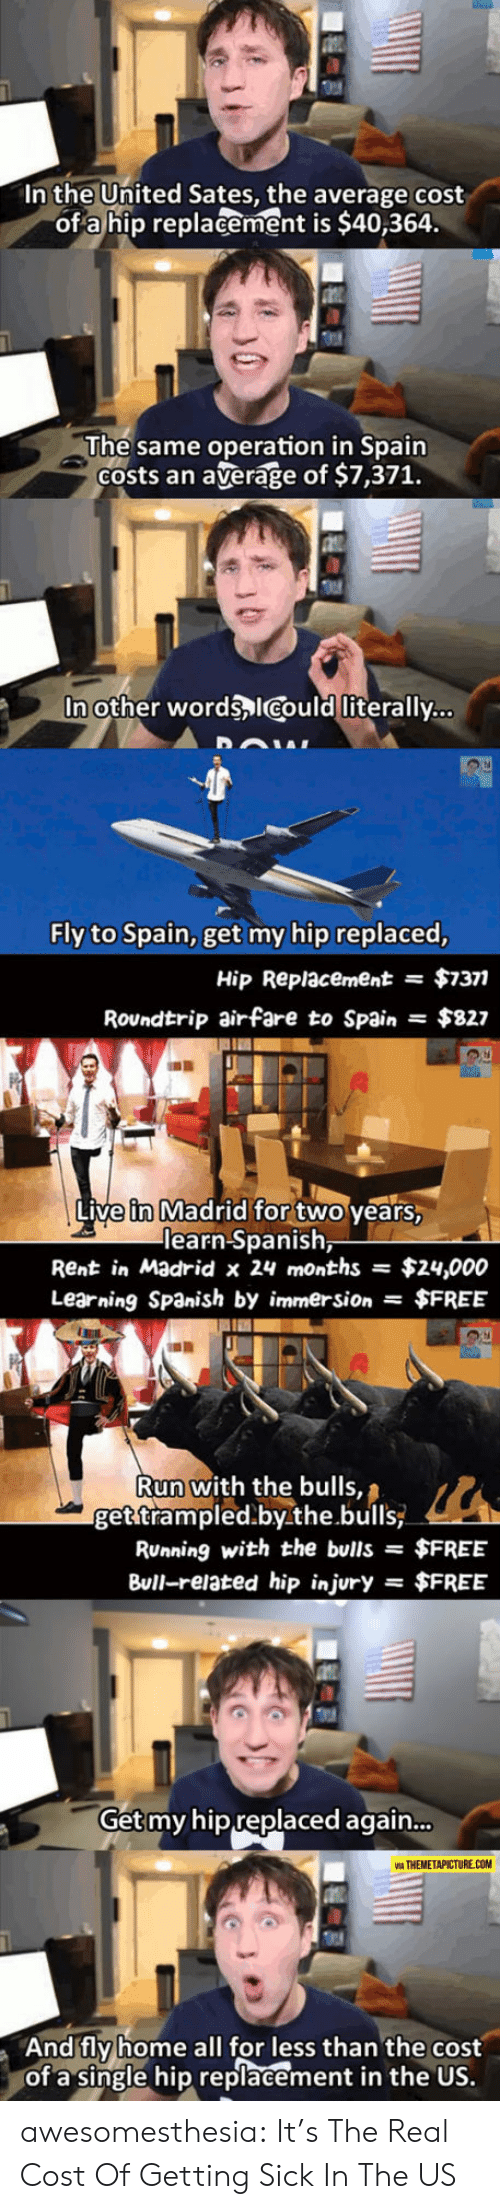 operation: In the United Sates, the average cost  of a hip replacement is $40,364.  The same operation in Spain  Costs an  average of $7,371.  In other words ICould literally...  Fly to Spain, get my hip replaced,  $7377  Hip Replacement  =  Roundtrip airfare to Spain  $827  Live in Madrid for two years,  learn Spanish,  Rent in Madrid x 24 months  $24,000  Learning Spanish by immersion $FREE  Run with the bulls,  get trampled.by.the.bulls  RUnning with the bulls =  $FREE  Bull-related hip injury  $FREE  =  Get my hip replaced again...  VIA THEMETAPICTURE.COM  And fly home all for less than the cost  of a single hip replacement in the US. awesomesthesia:  It's The Real Cost Of Getting Sick In The US